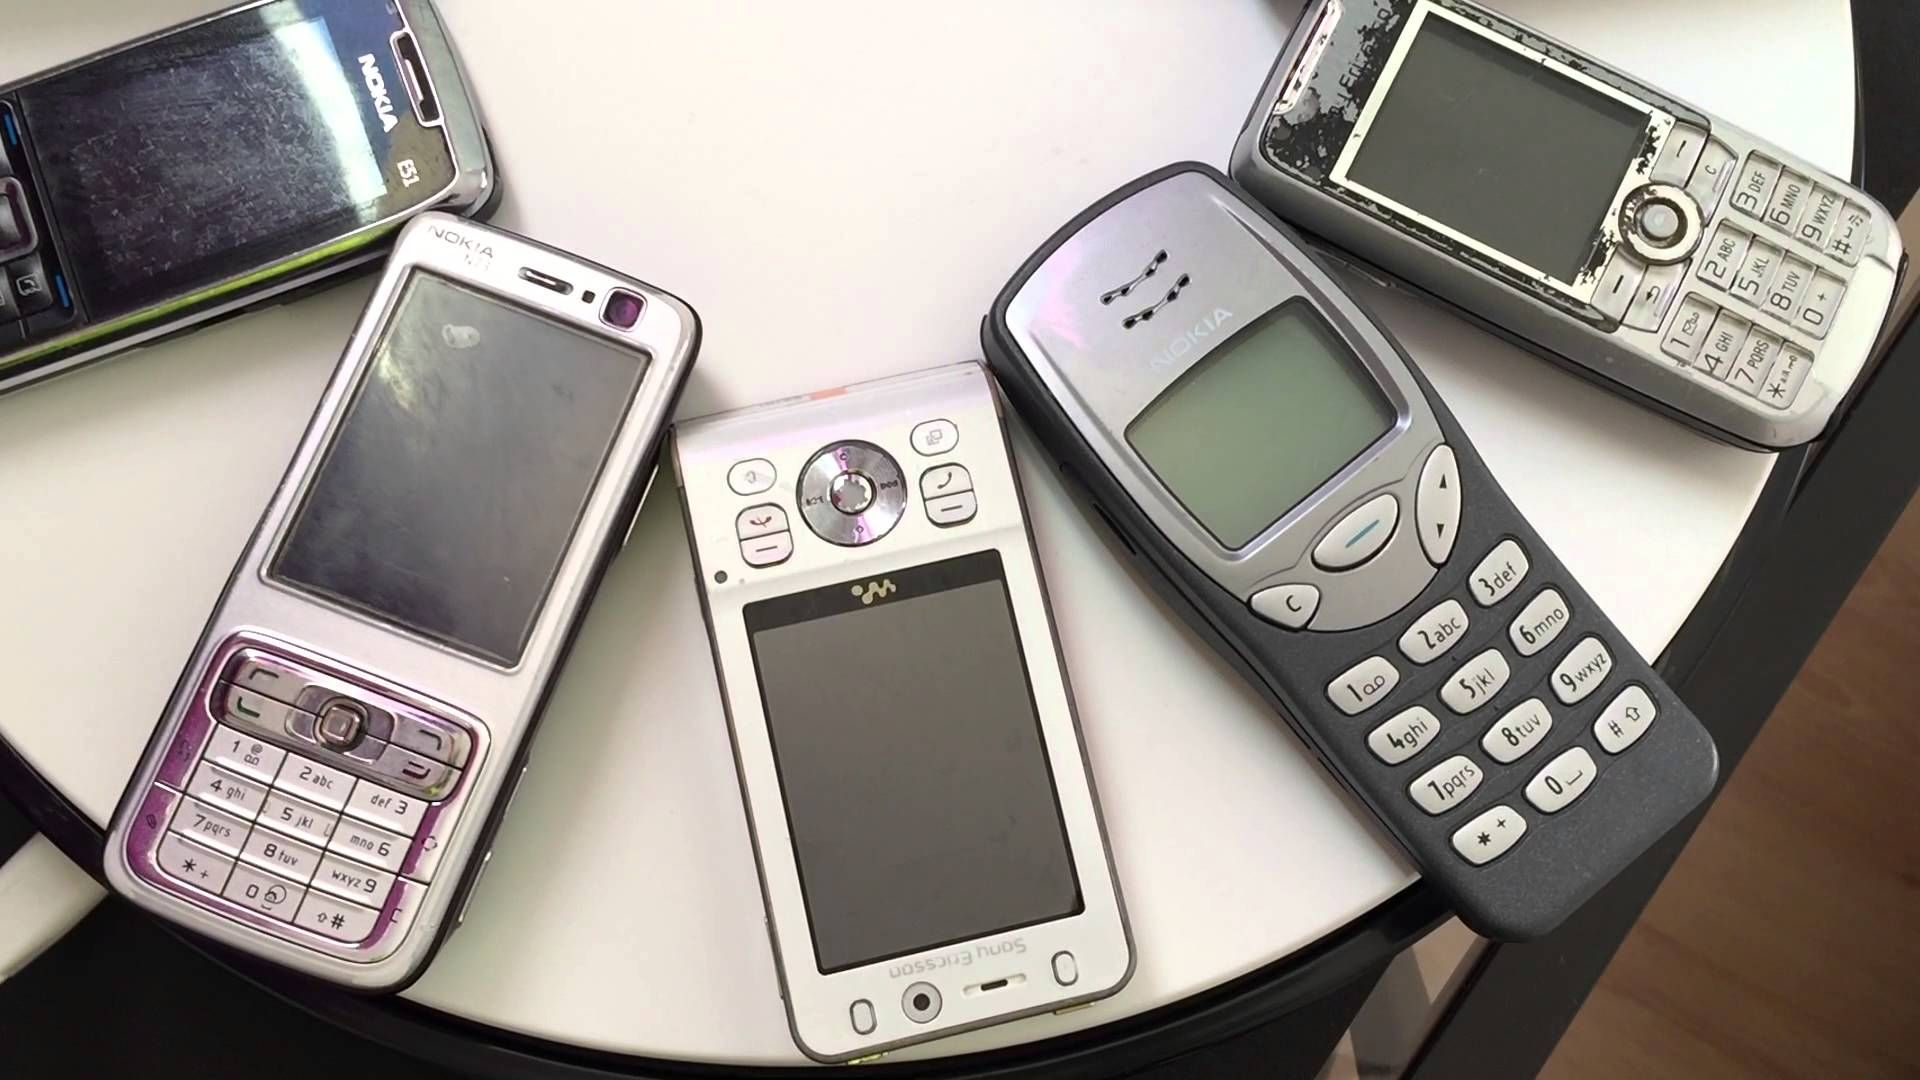 OLD MOBILE PHONES NOKIA SAMSUNG SONY ERICSSON